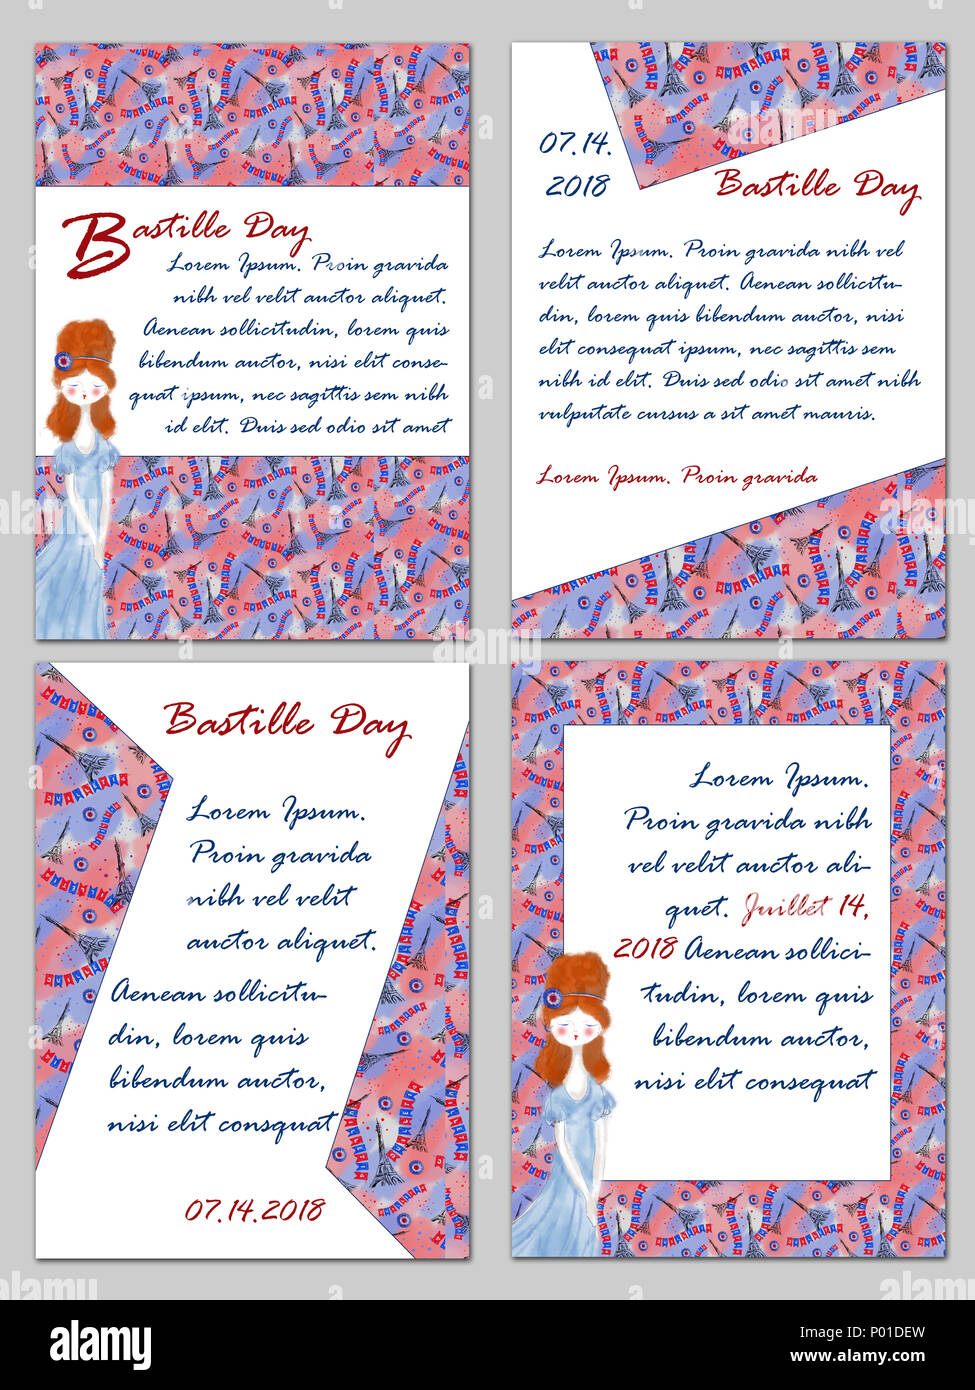 Set Of Bastille Day Templates With Eiffel Tower Pattern And Patriotic Mademoiselle Four For France National Holiday Celebration